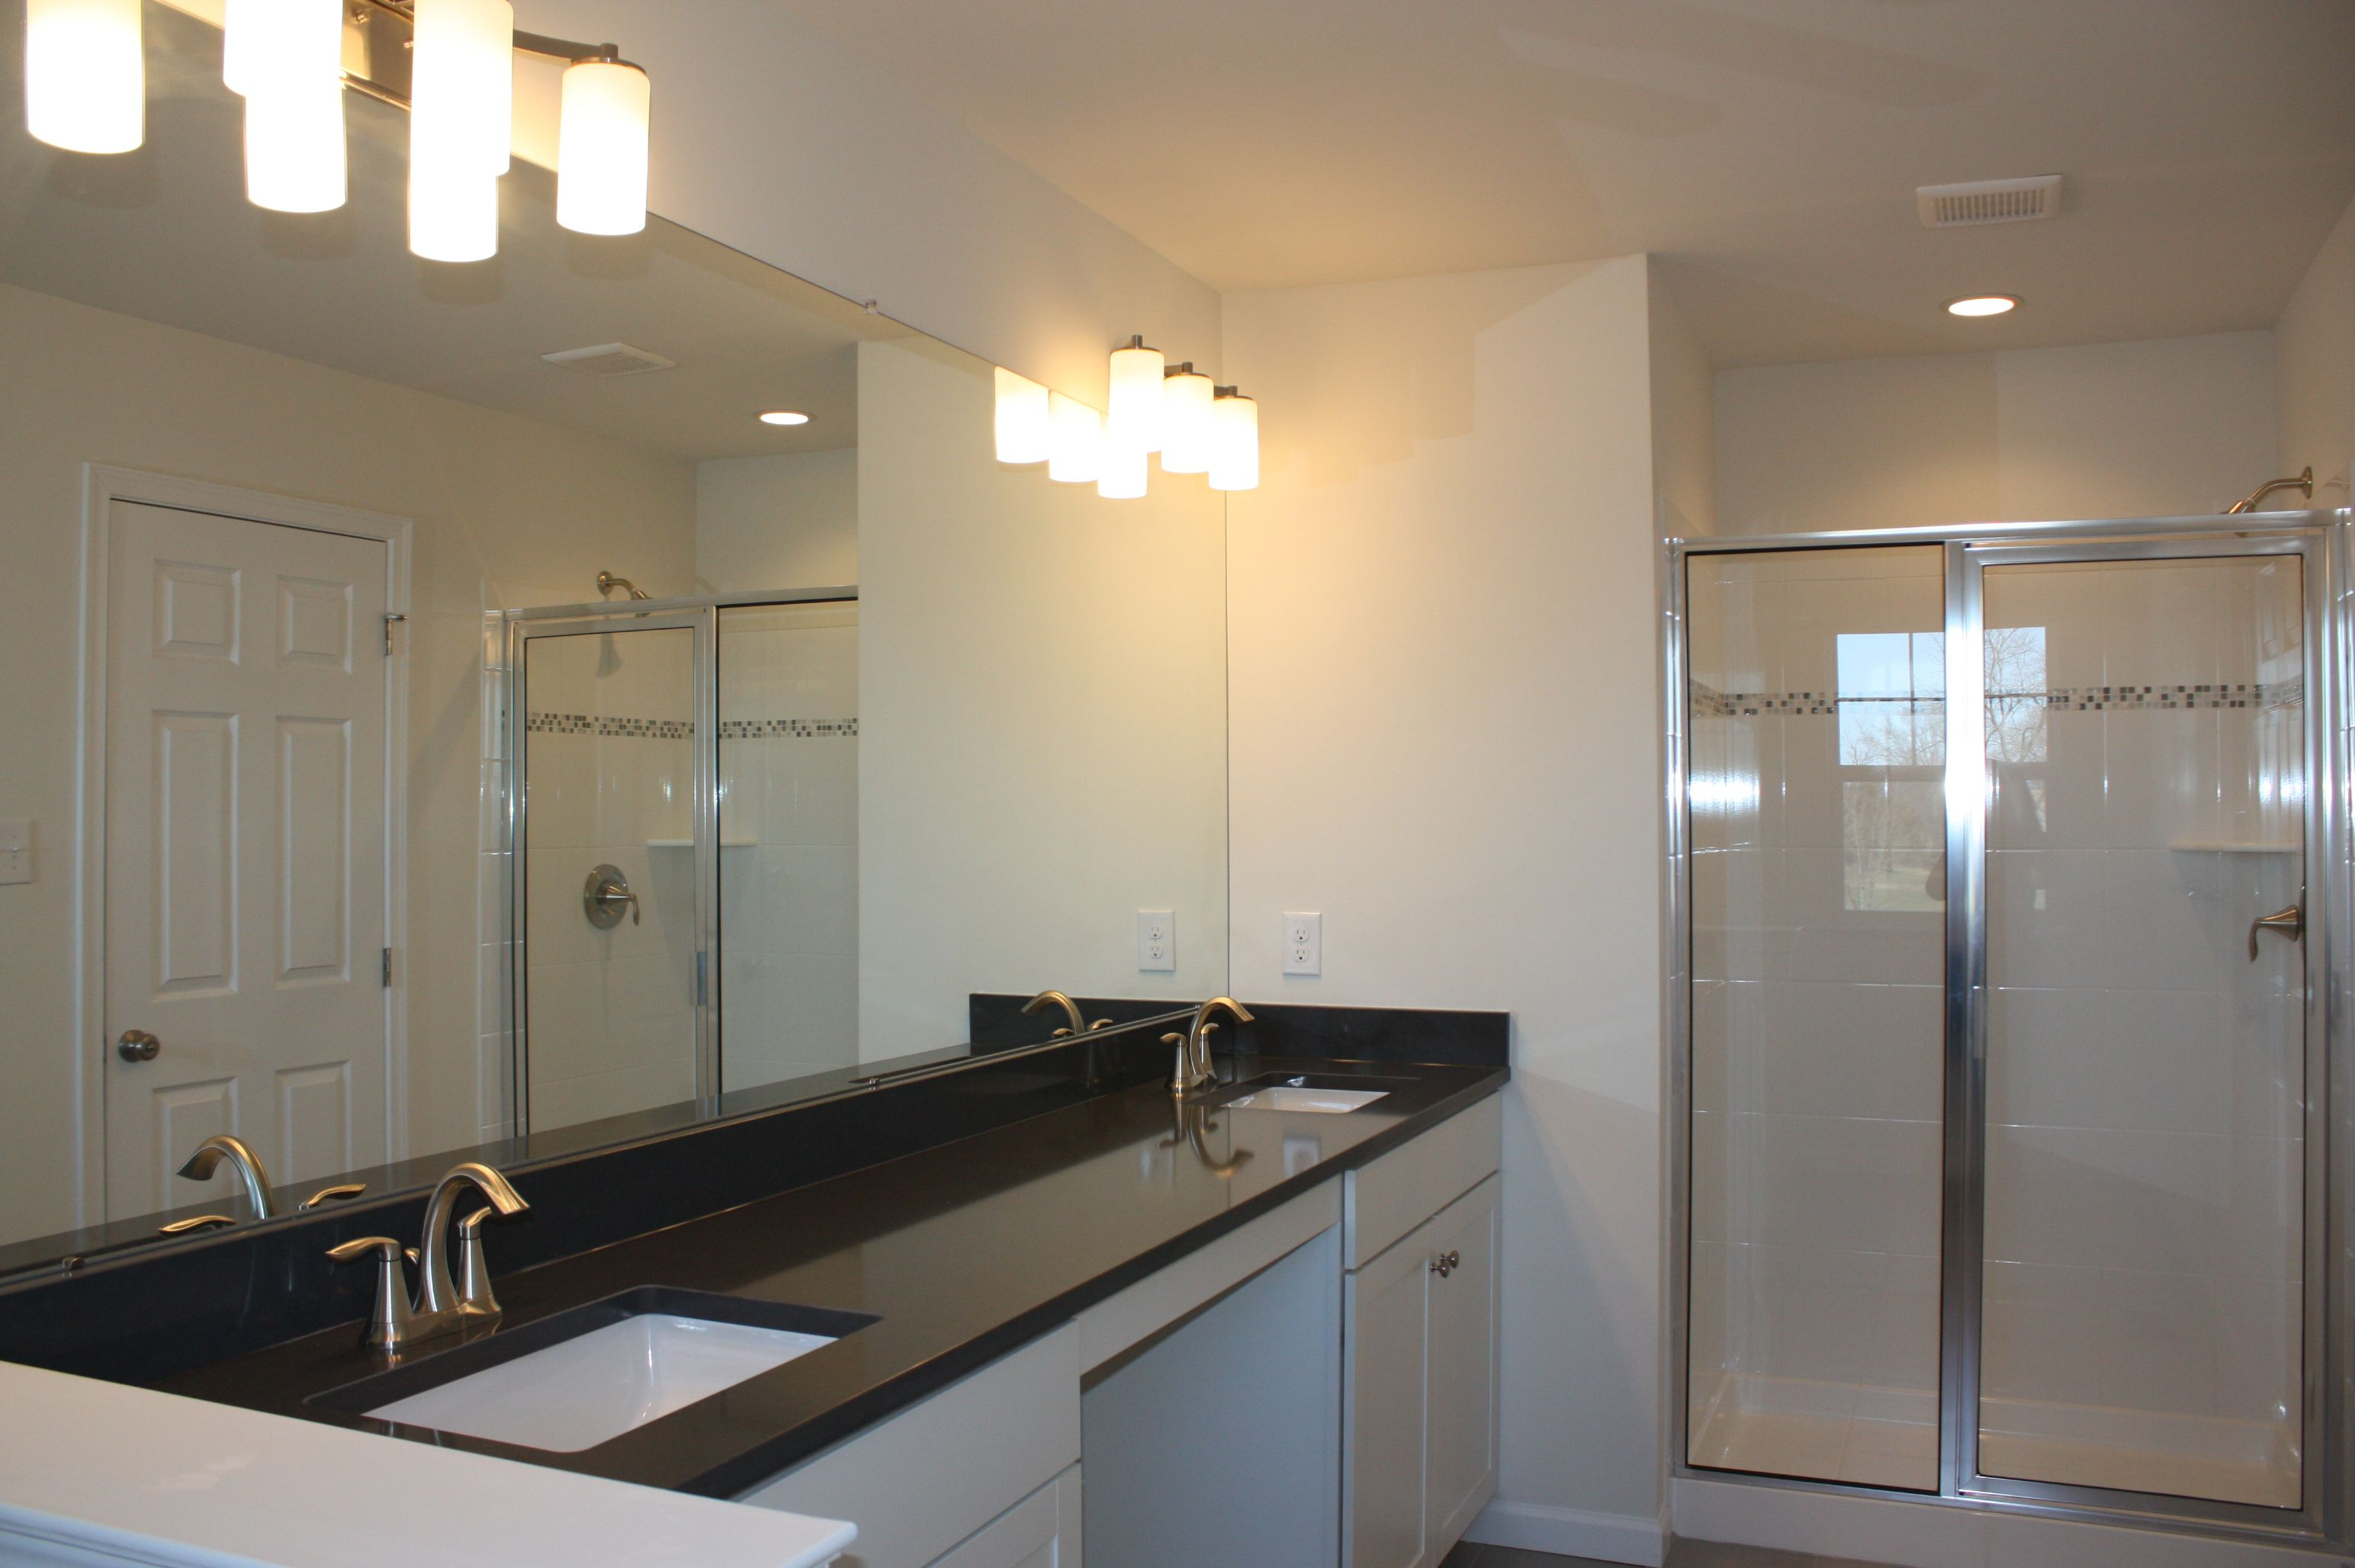 Bathroom featured in the Sutton By Rouse Chamberlin Homes in Philadelphia, PA